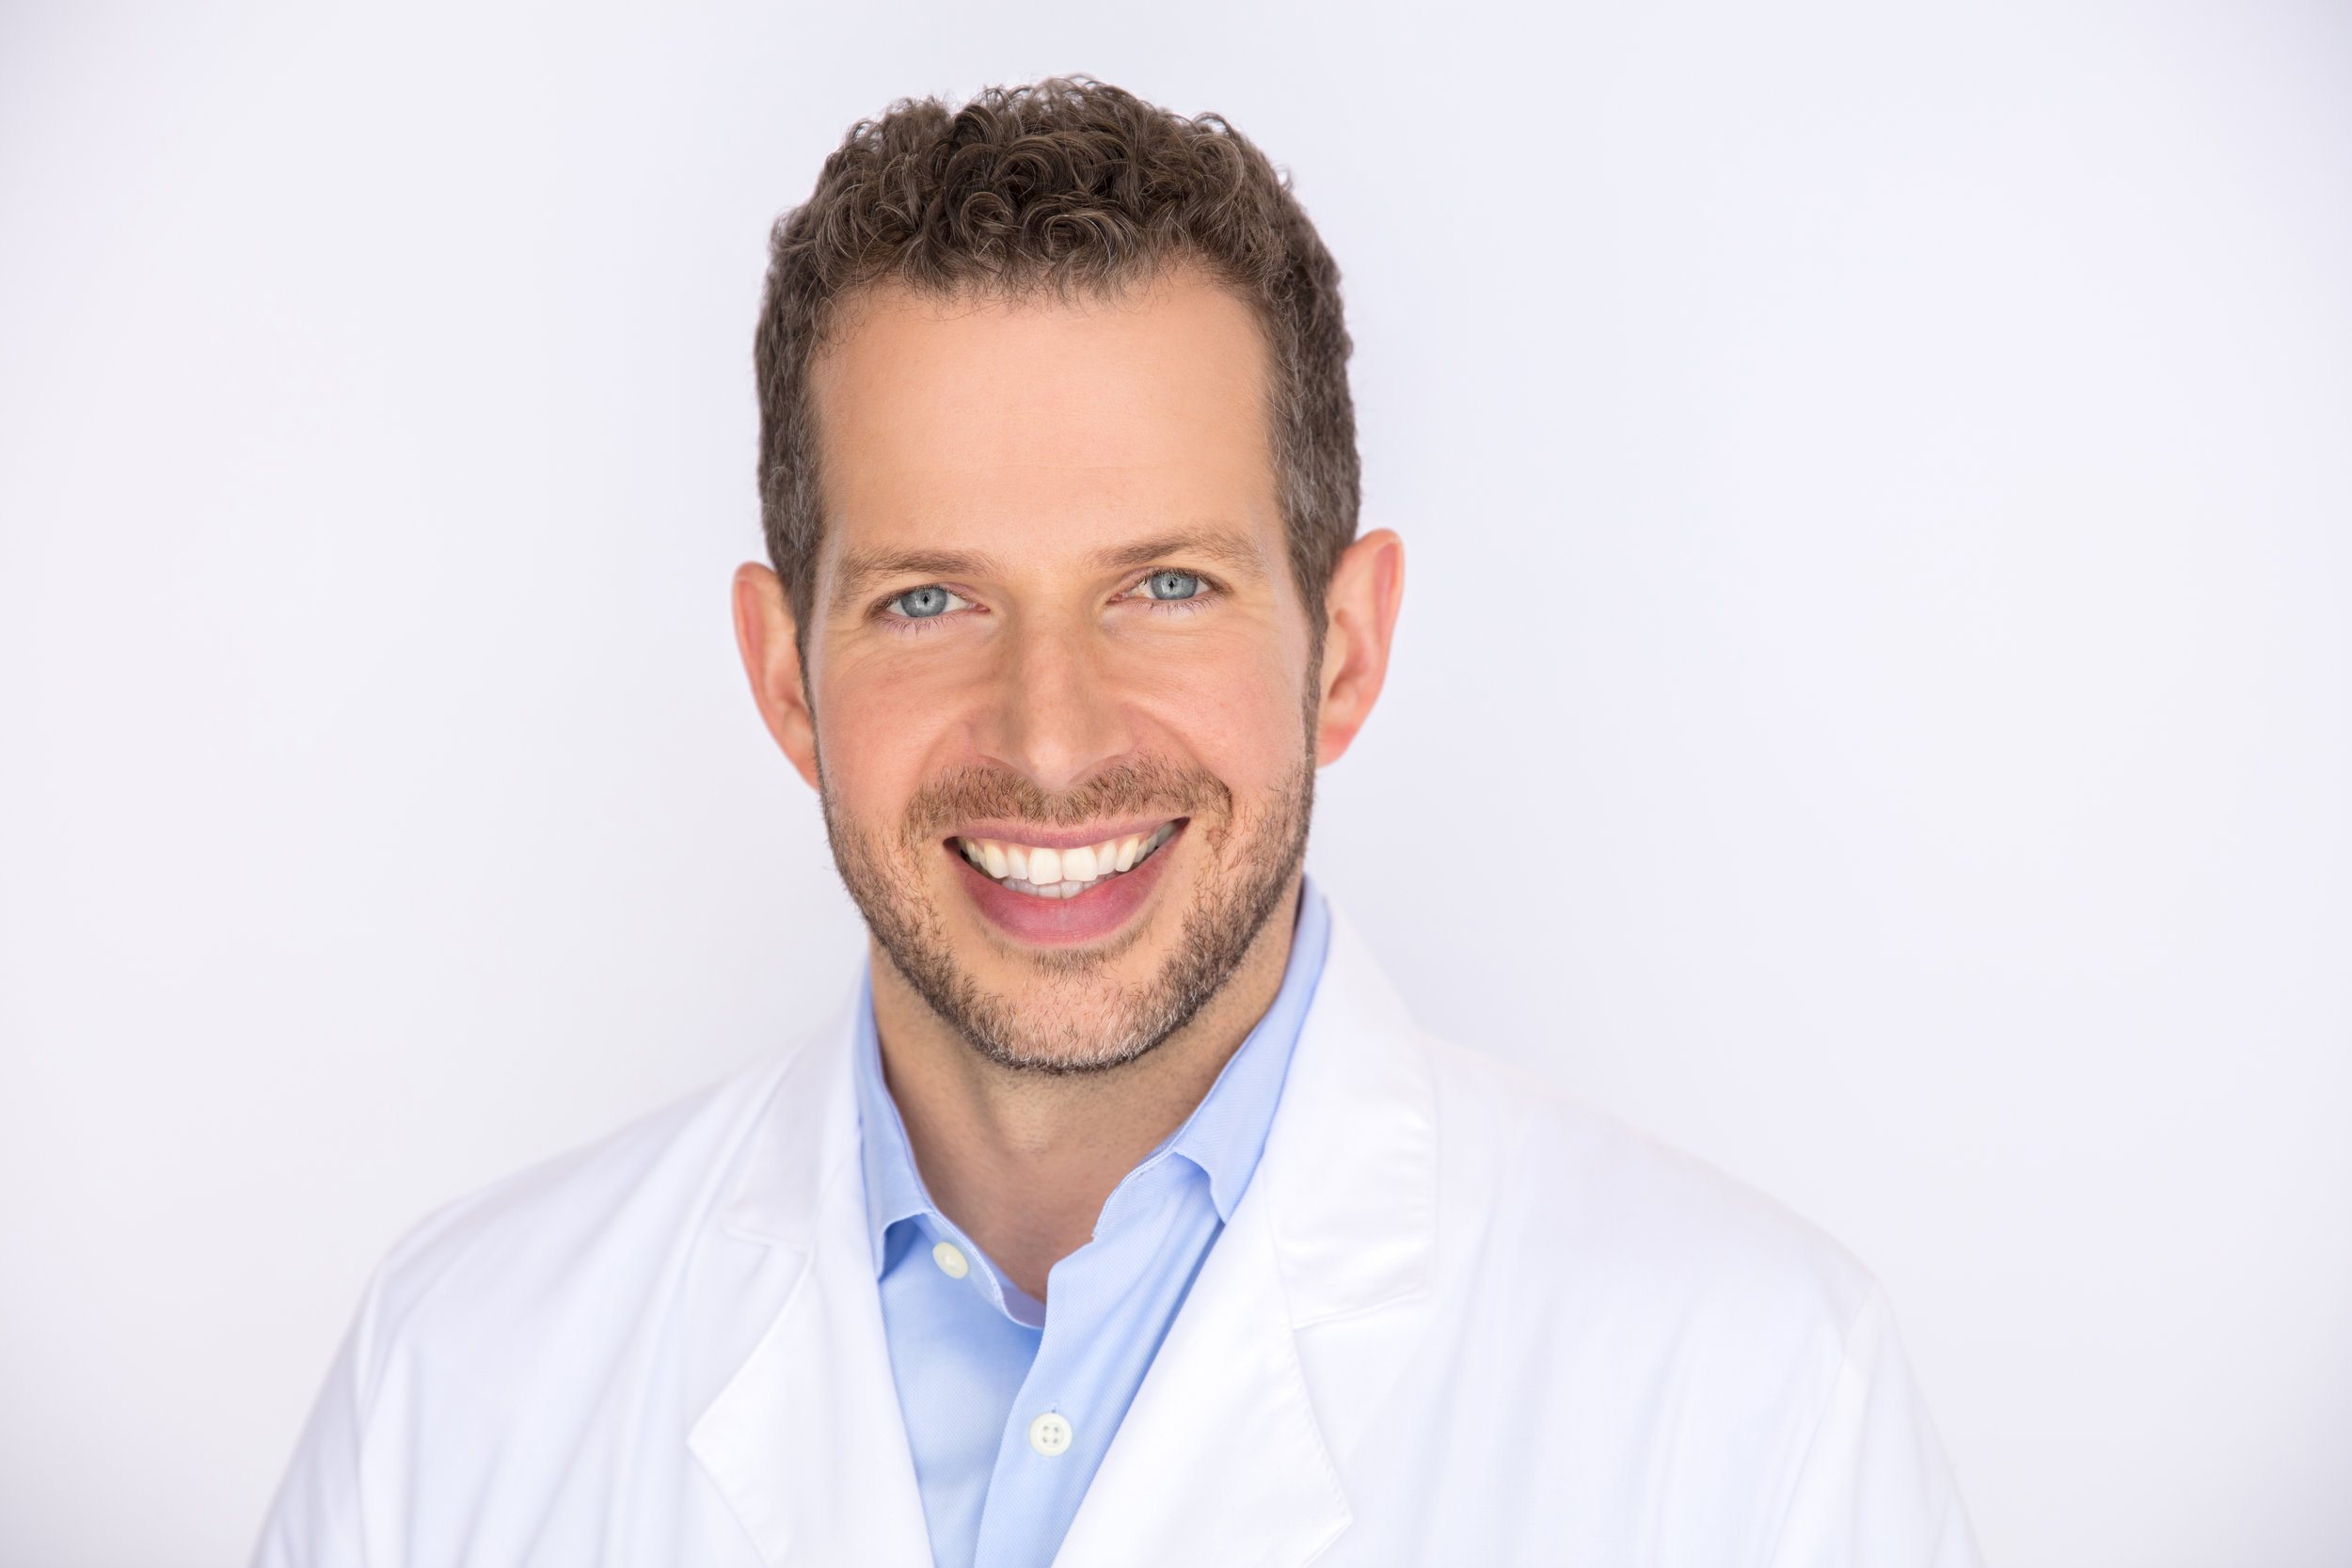 - Dr. Nick Karr completed his residency at St. Johns Hospital in Detroit.